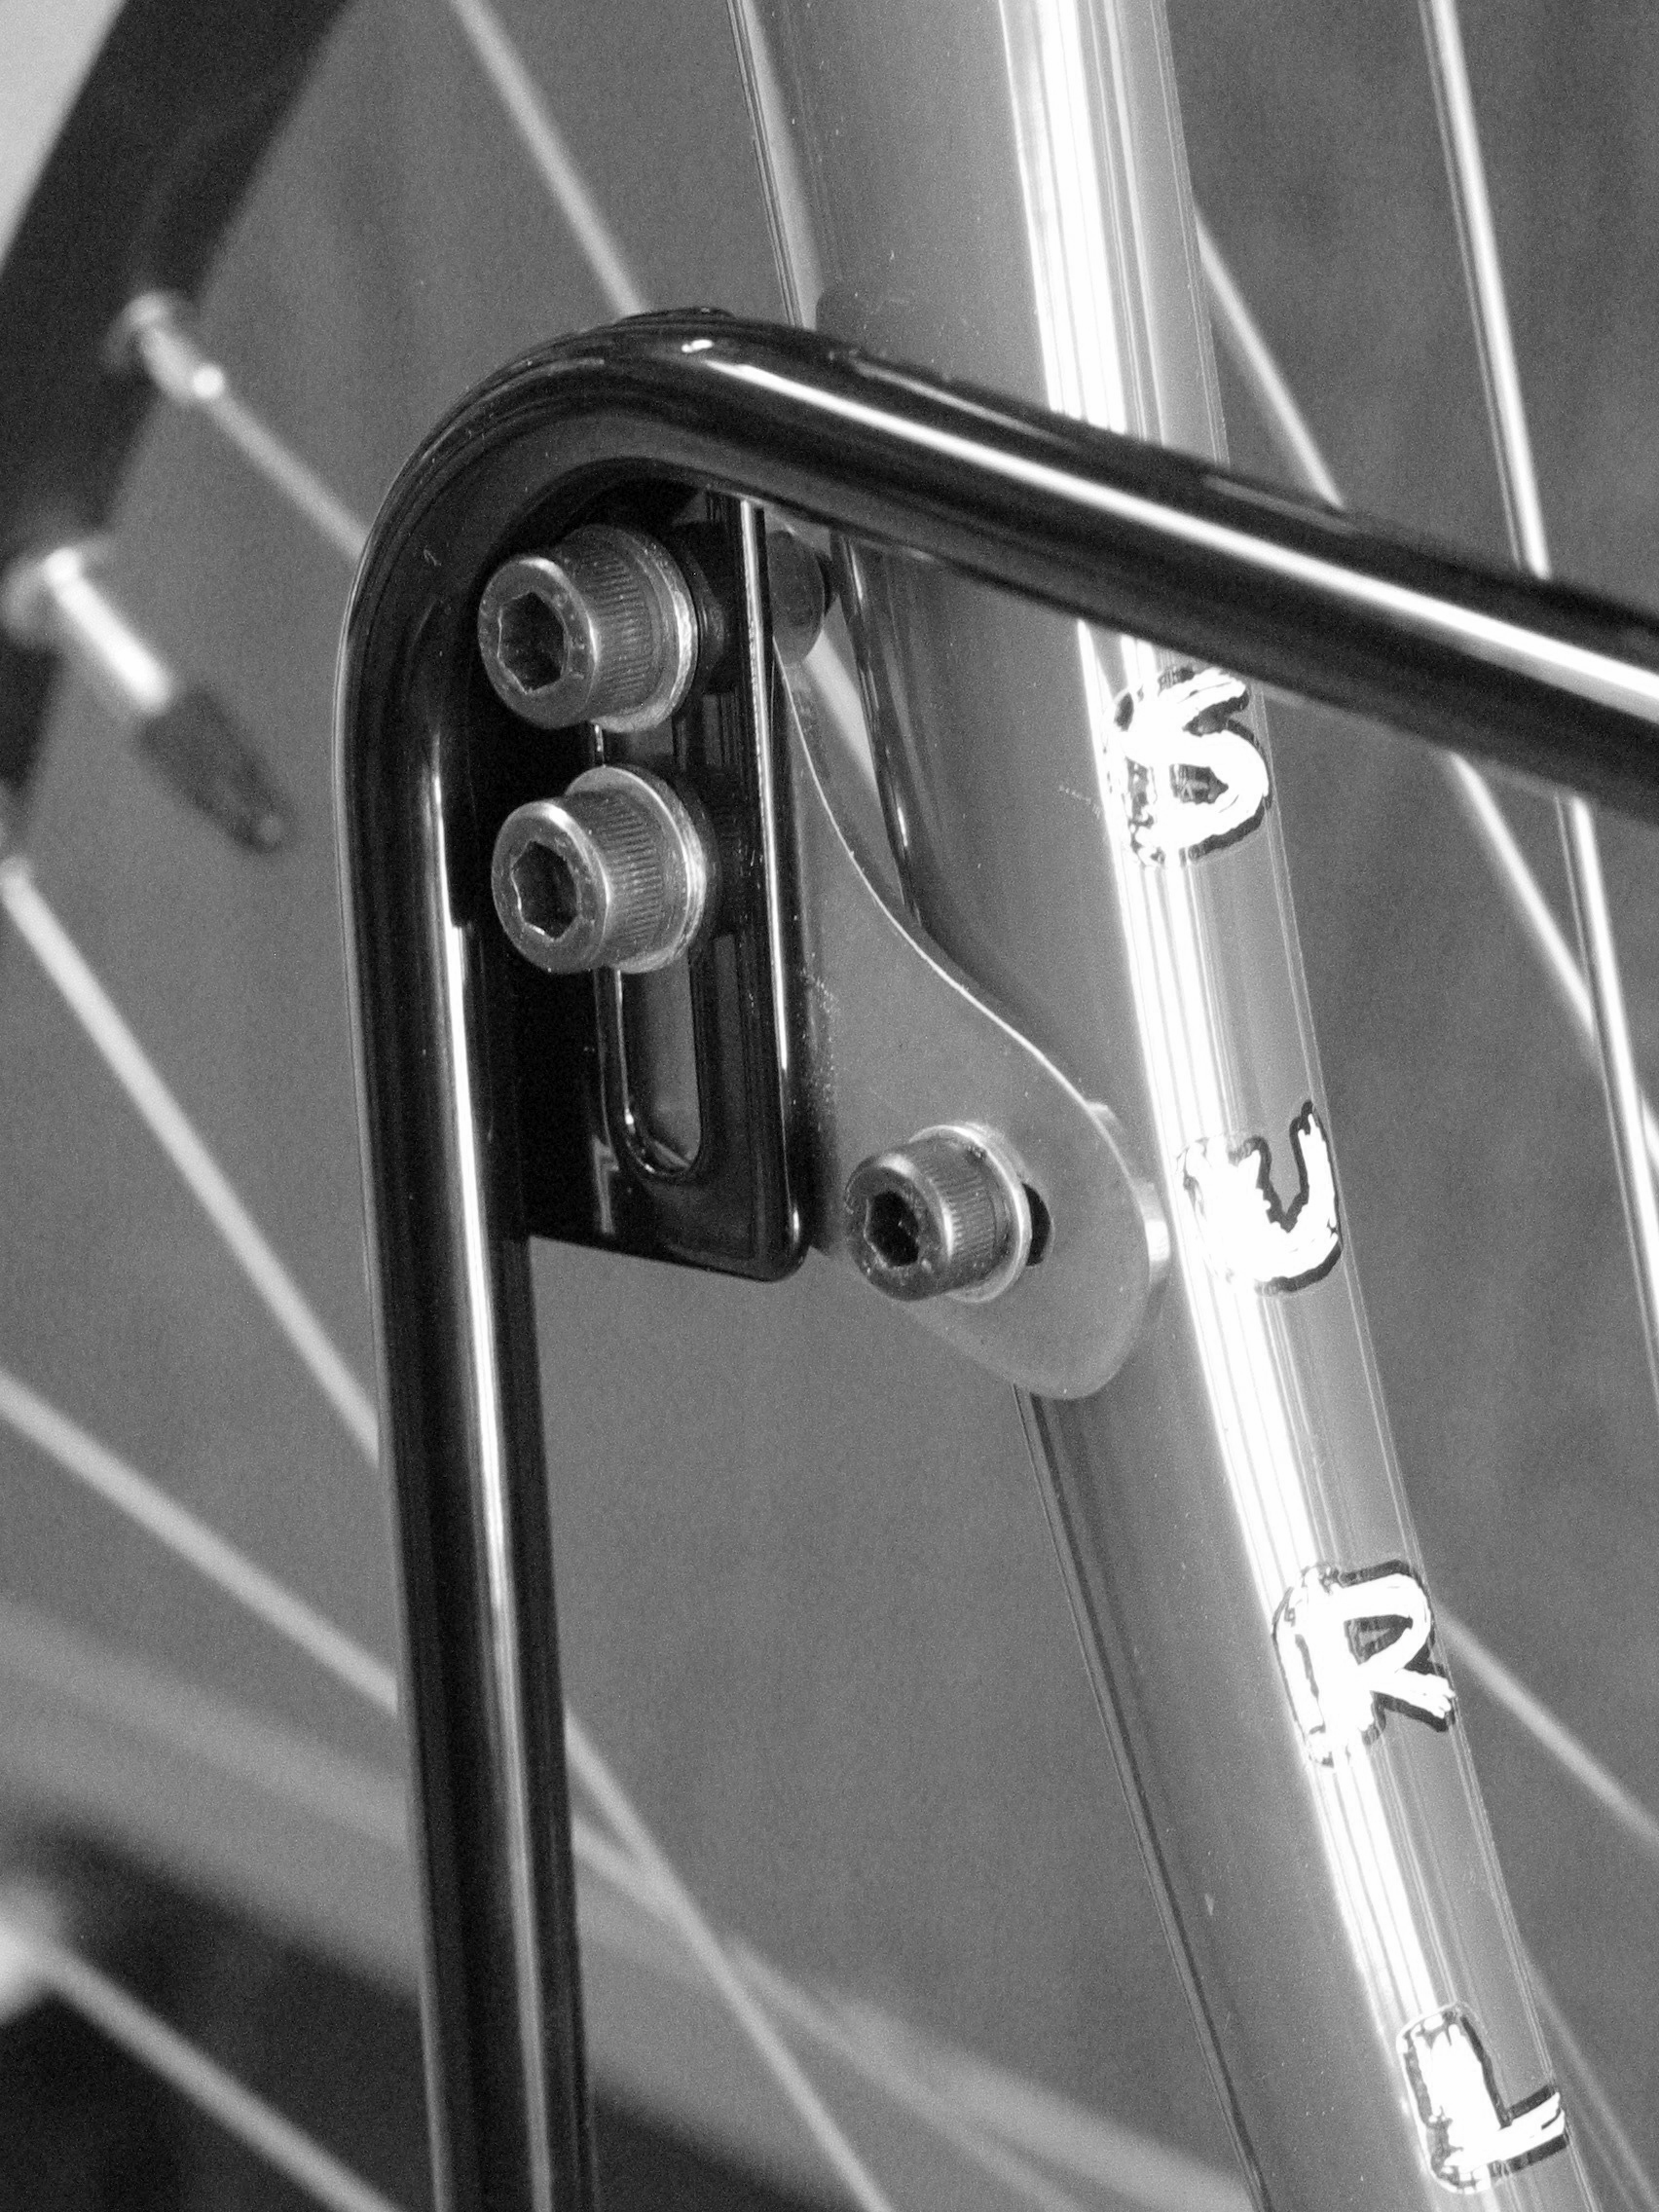 Racks — Nothing is better than a bike that fits